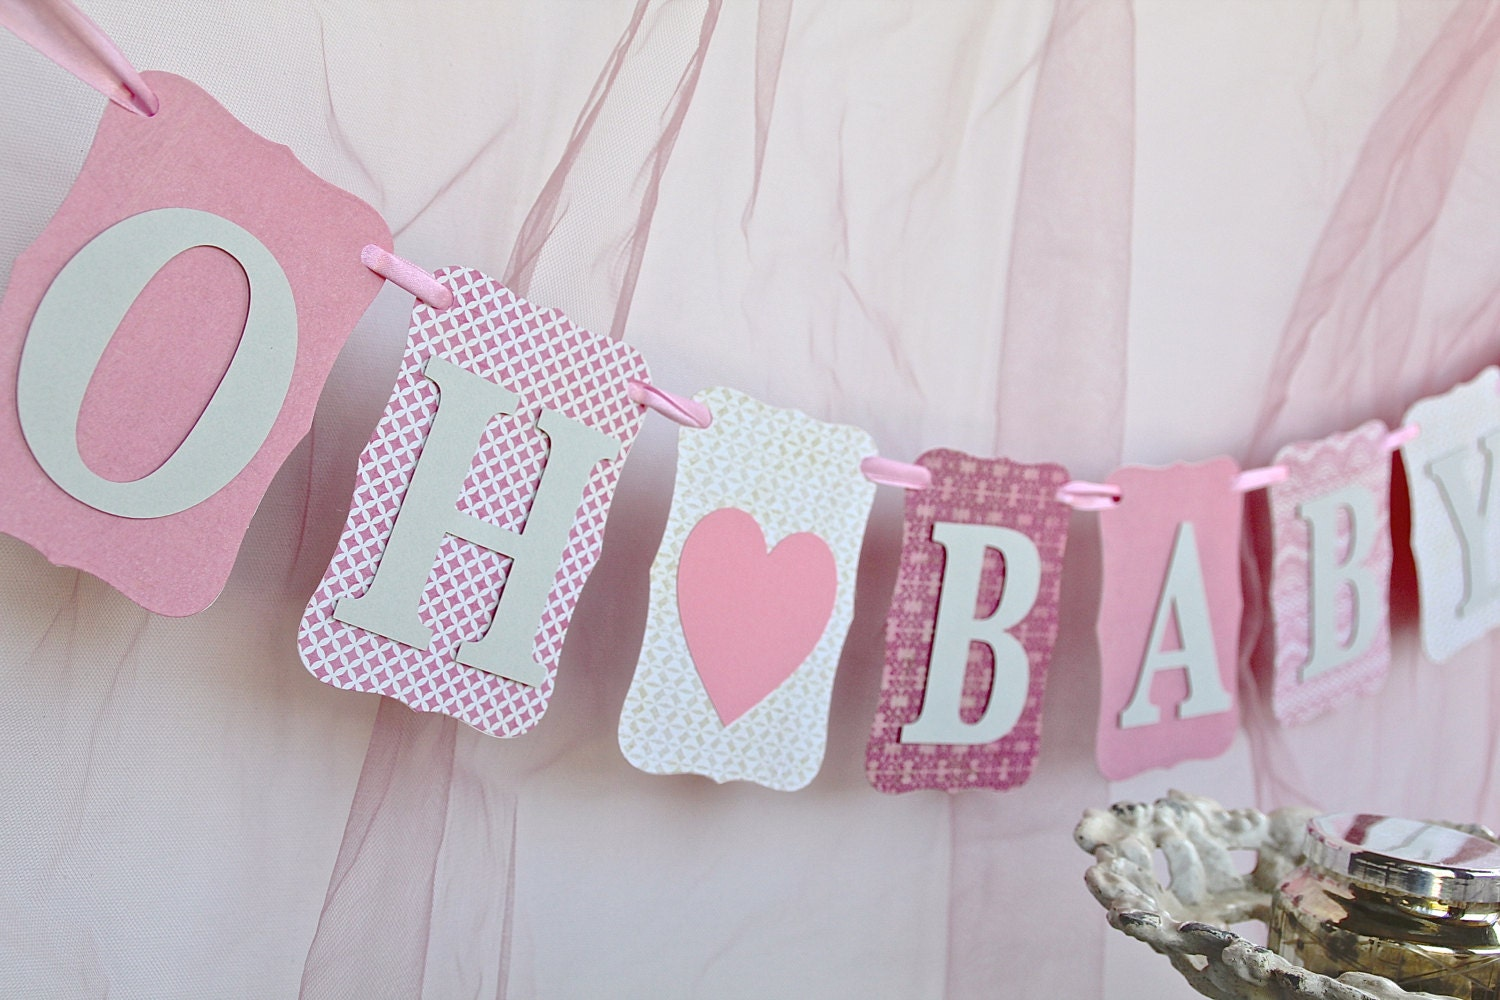 Baby girl shower decorations oh baby pink and gray - Baby girl baby shower decorations ...